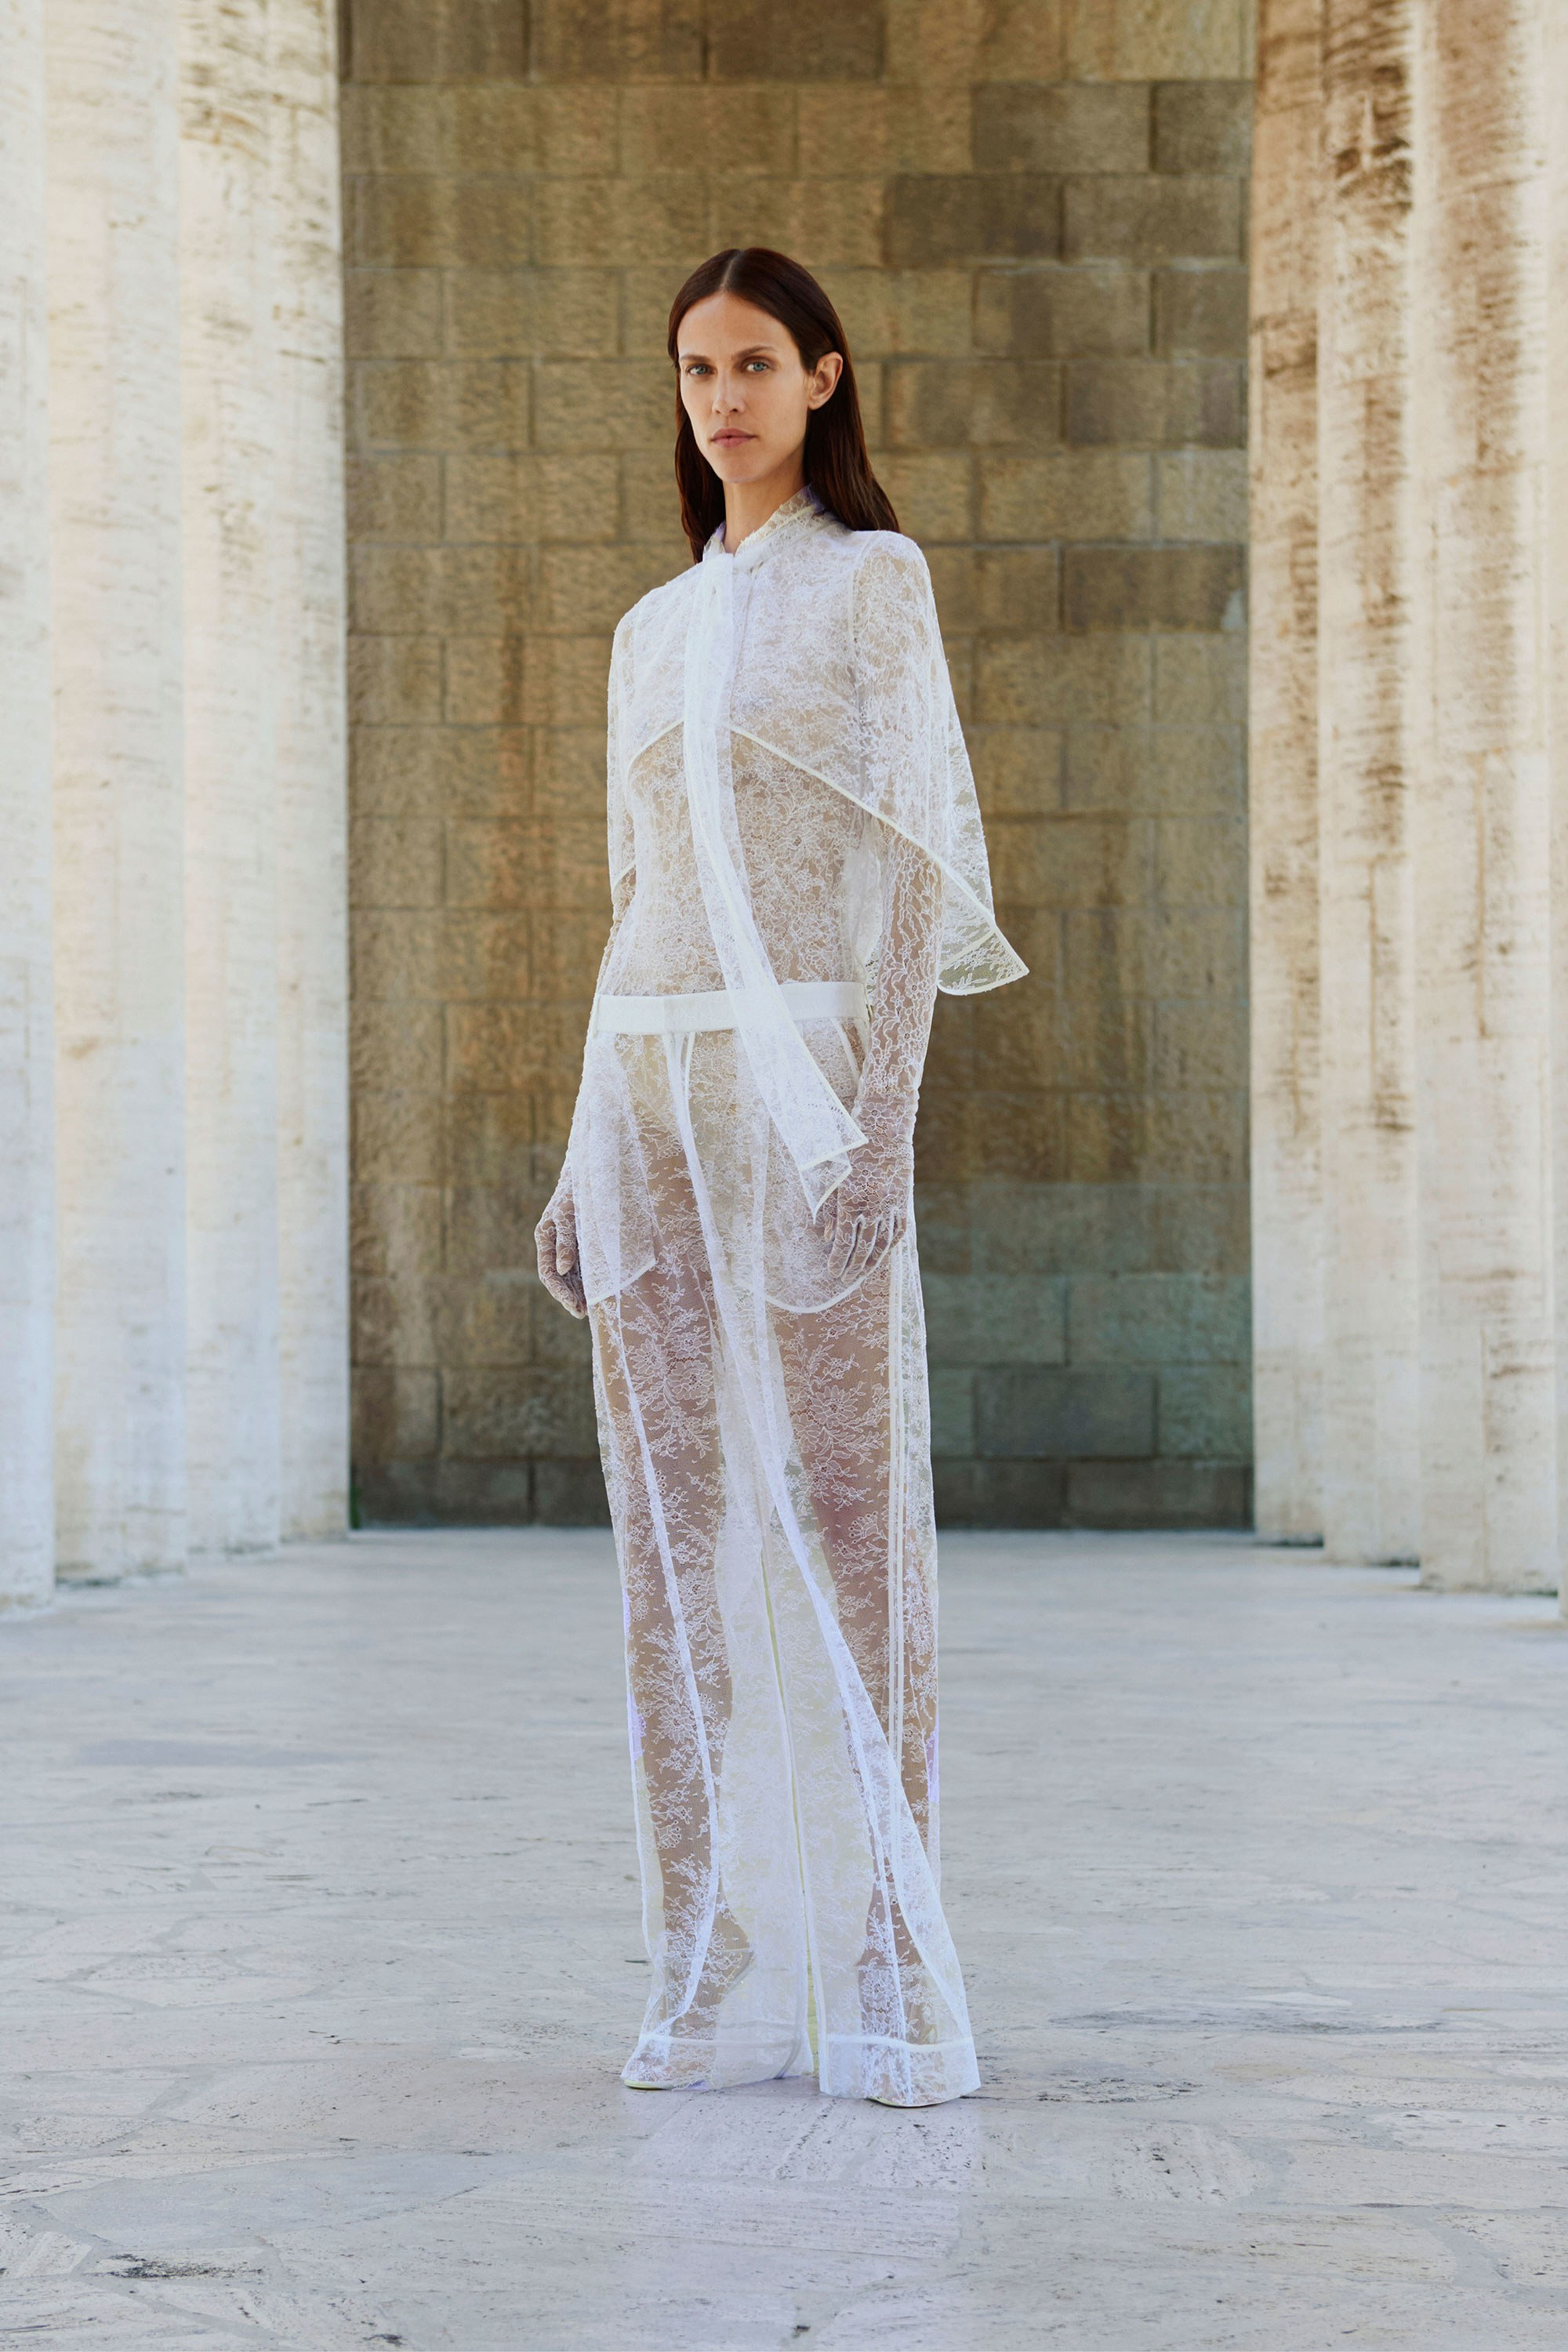 02-givenchy-resort-2018.jpg